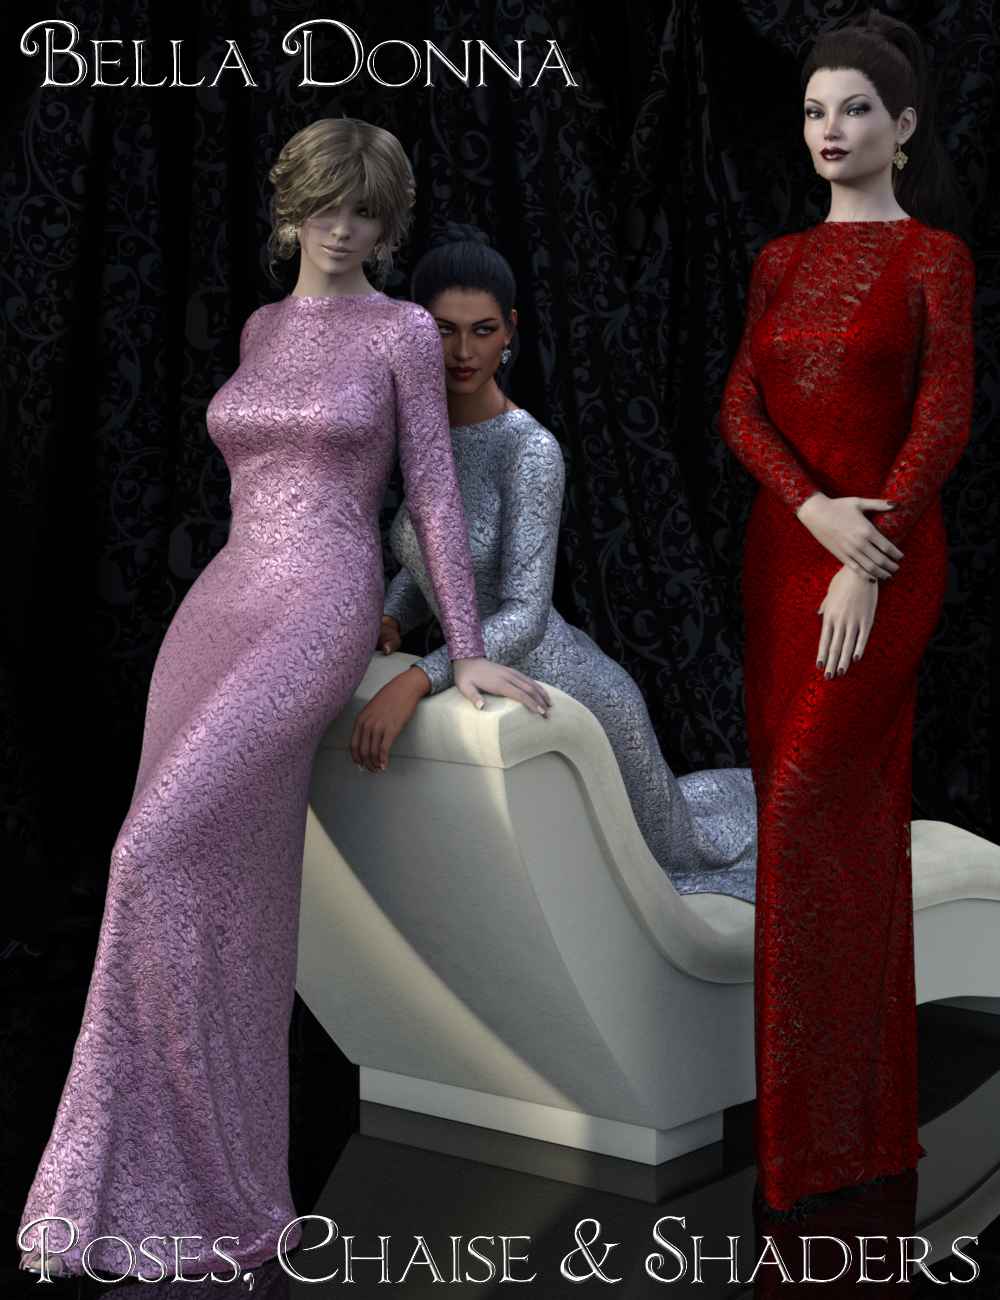 Bella Donna Poses, Chaise & Shaders by: PandyGirlElliandra, 3D Models by Daz 3D